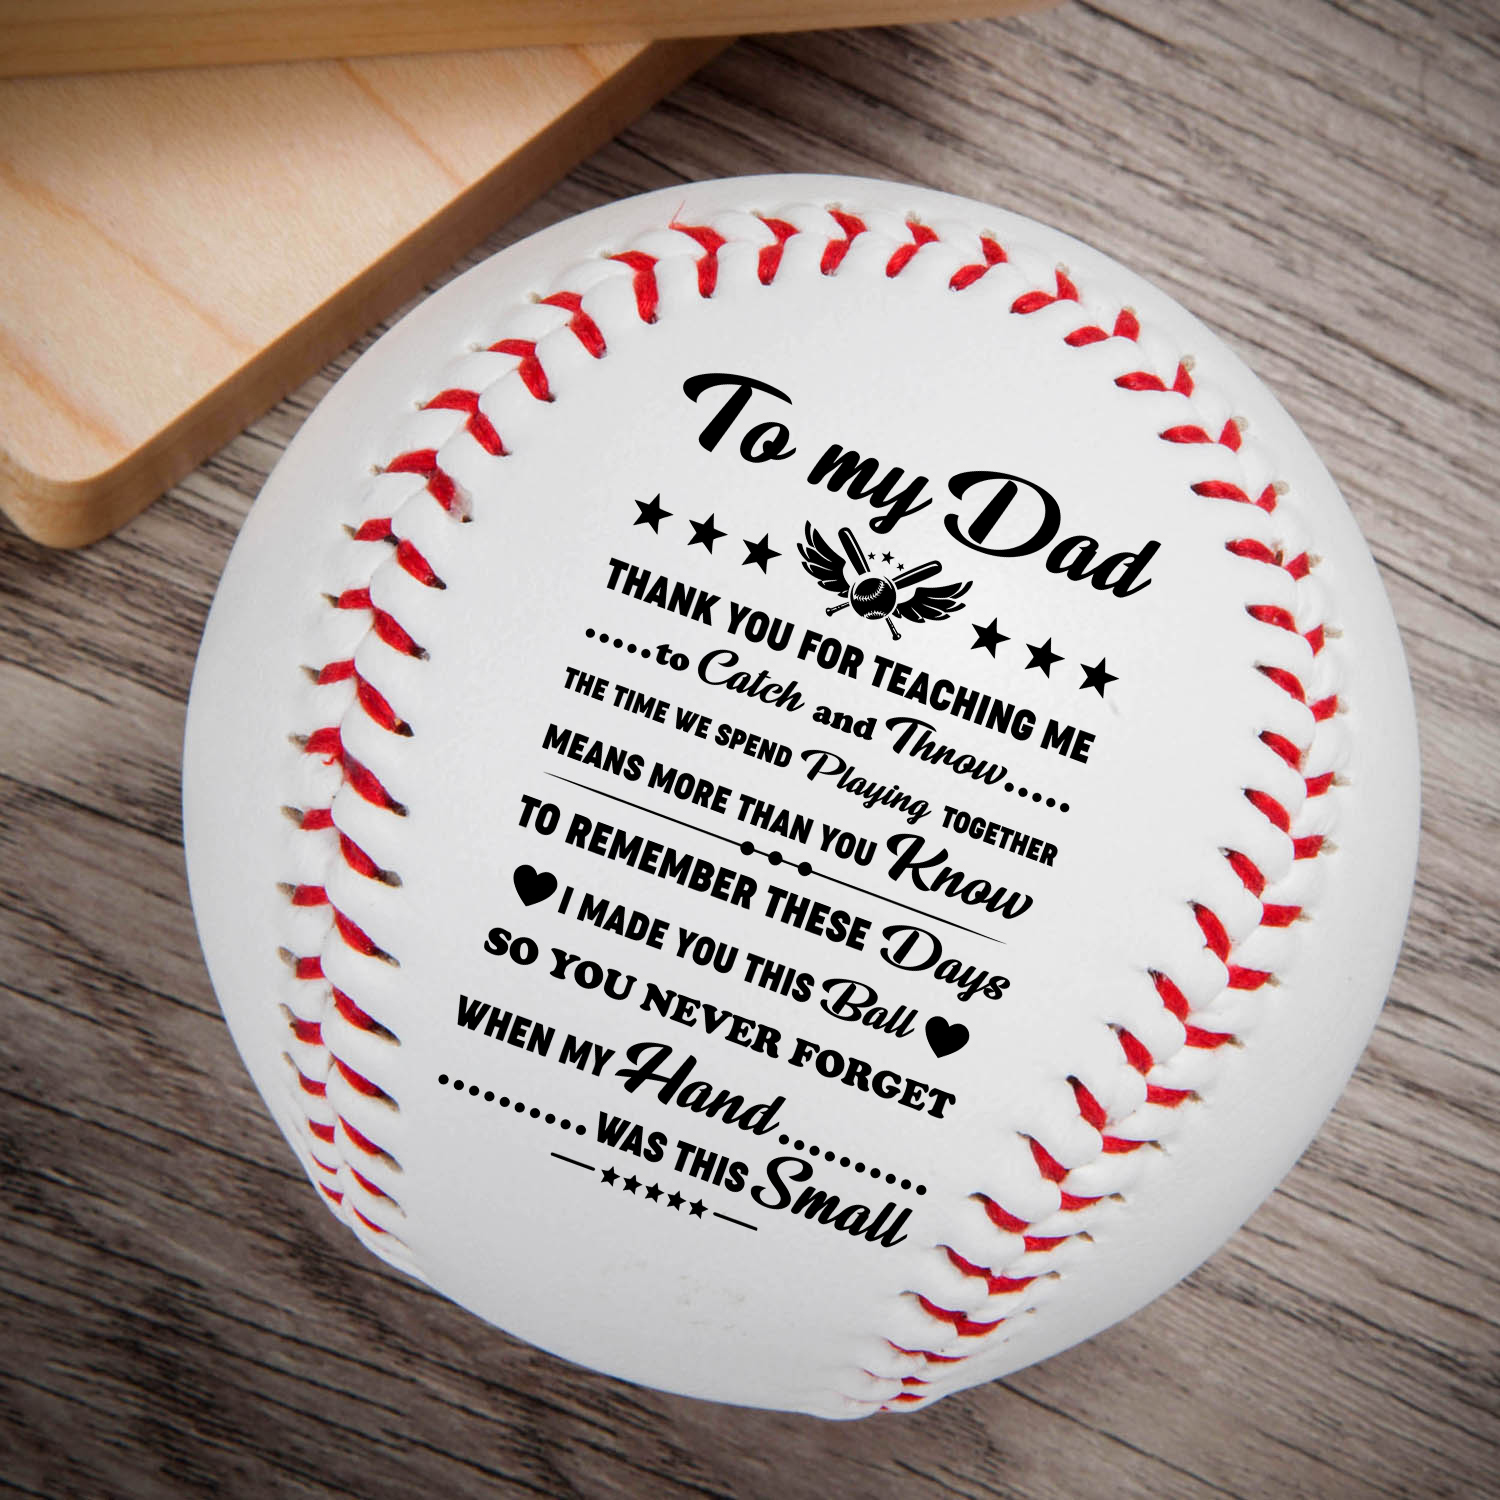 To My Dad – Thank You For Everything printed Content Baseball Ball Birthday Christmas Gift.